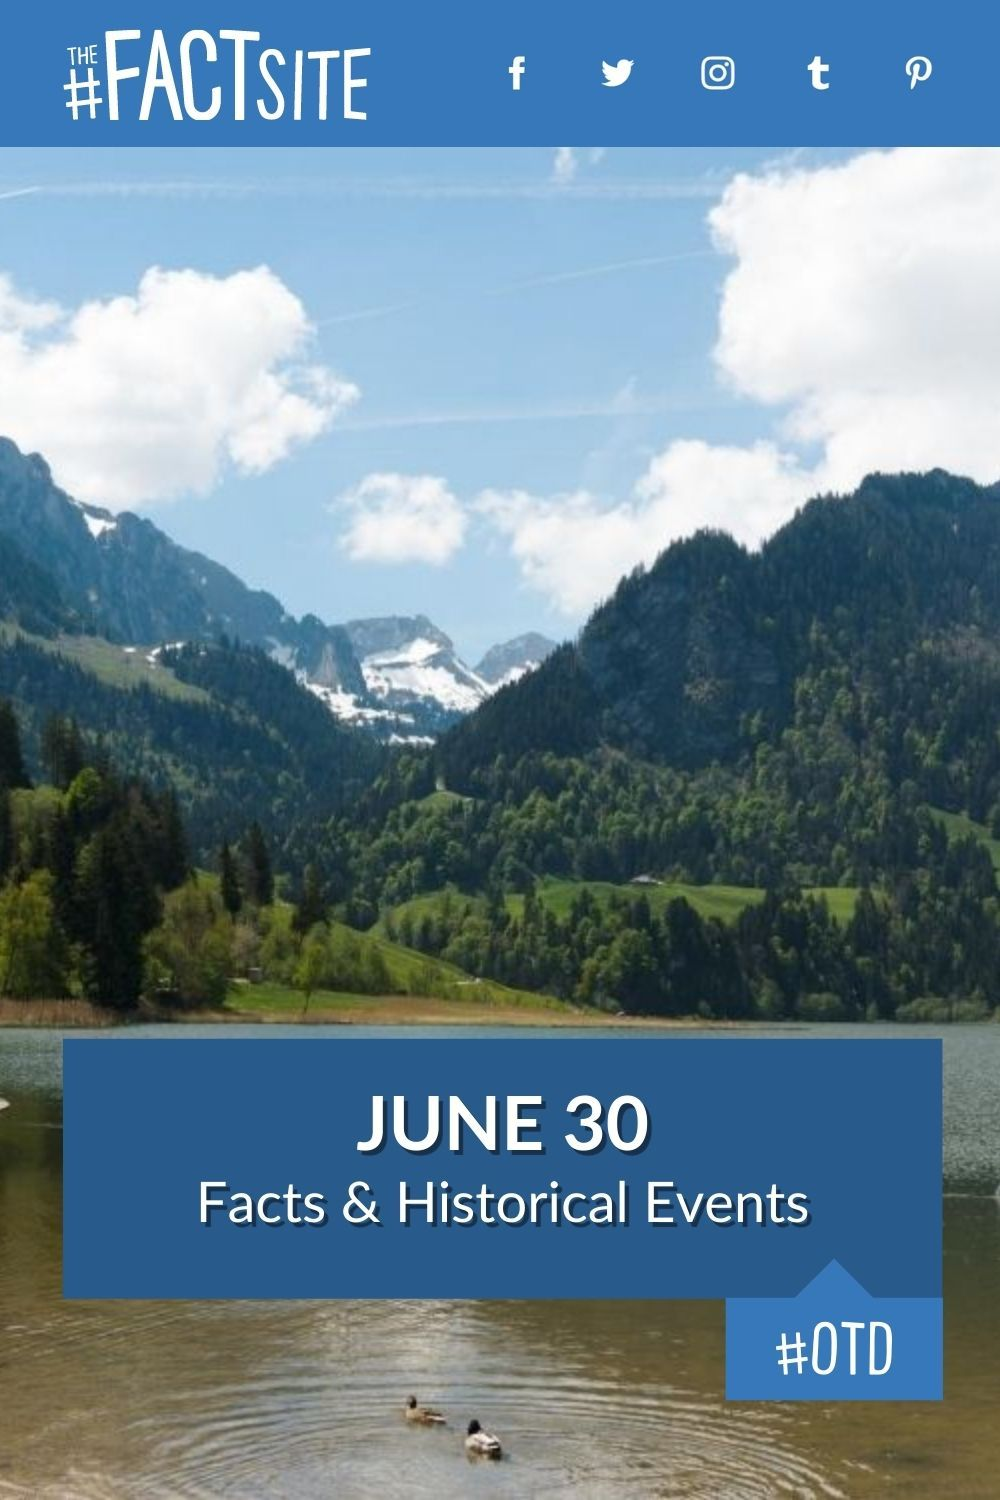 Facts & Historic Events That Happened on June 30